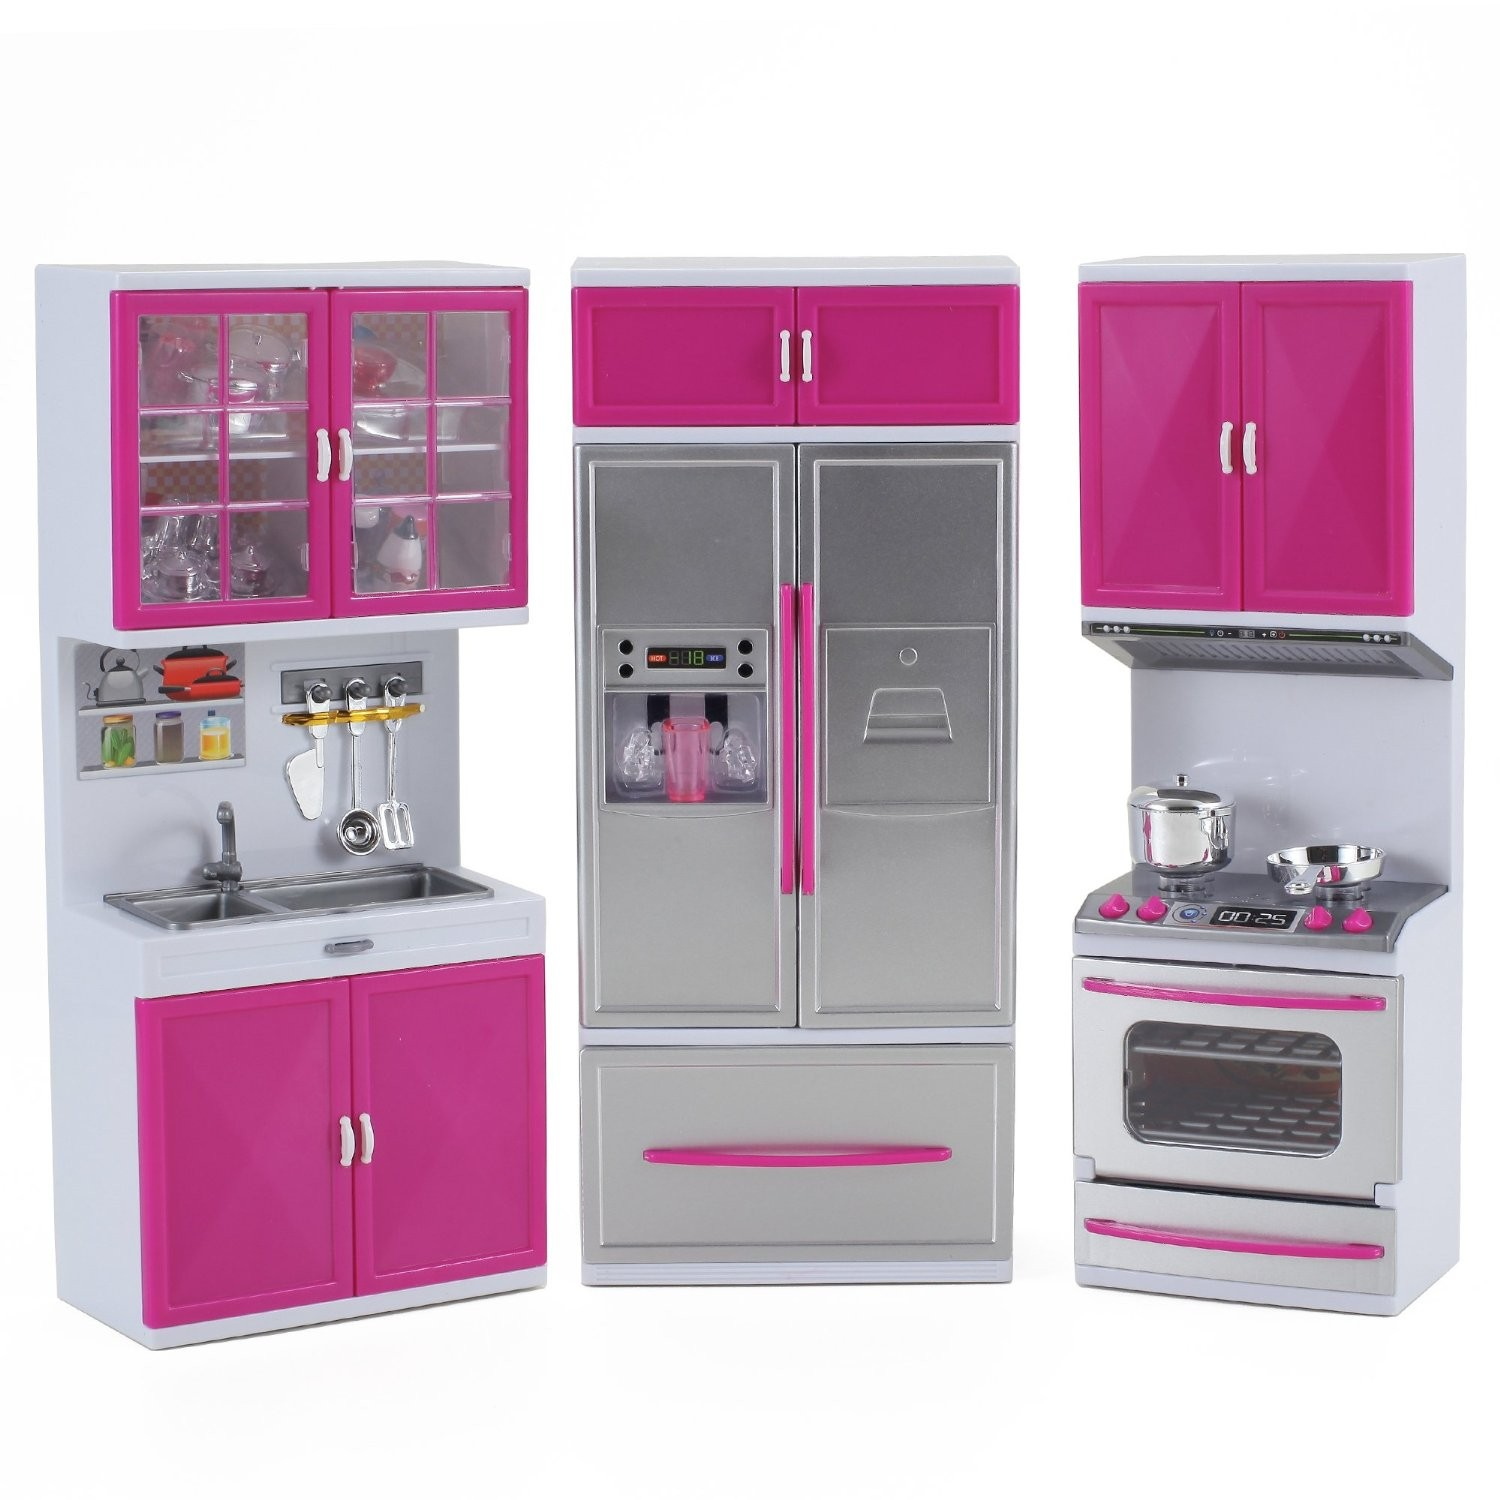 My modern kitchen full deluxe kit battery operated kitchen for Kitchen kitchen set